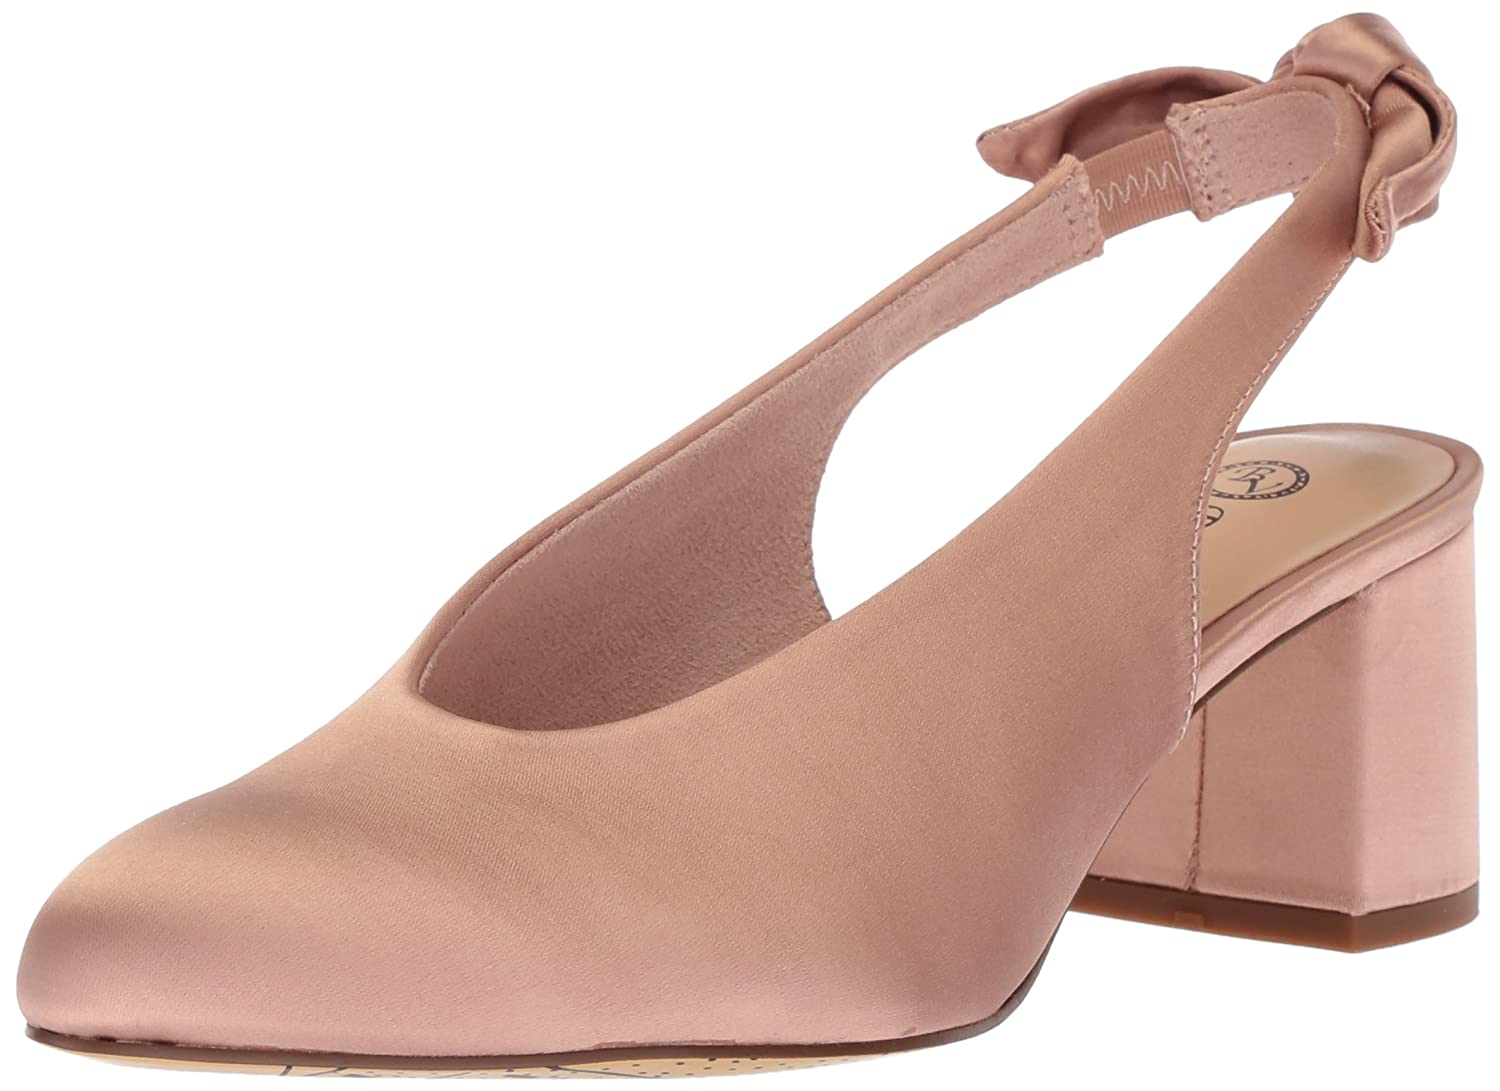 Bella Vita Women's Joni Pump B0781VQF8G 9 2W US|Blush Satin